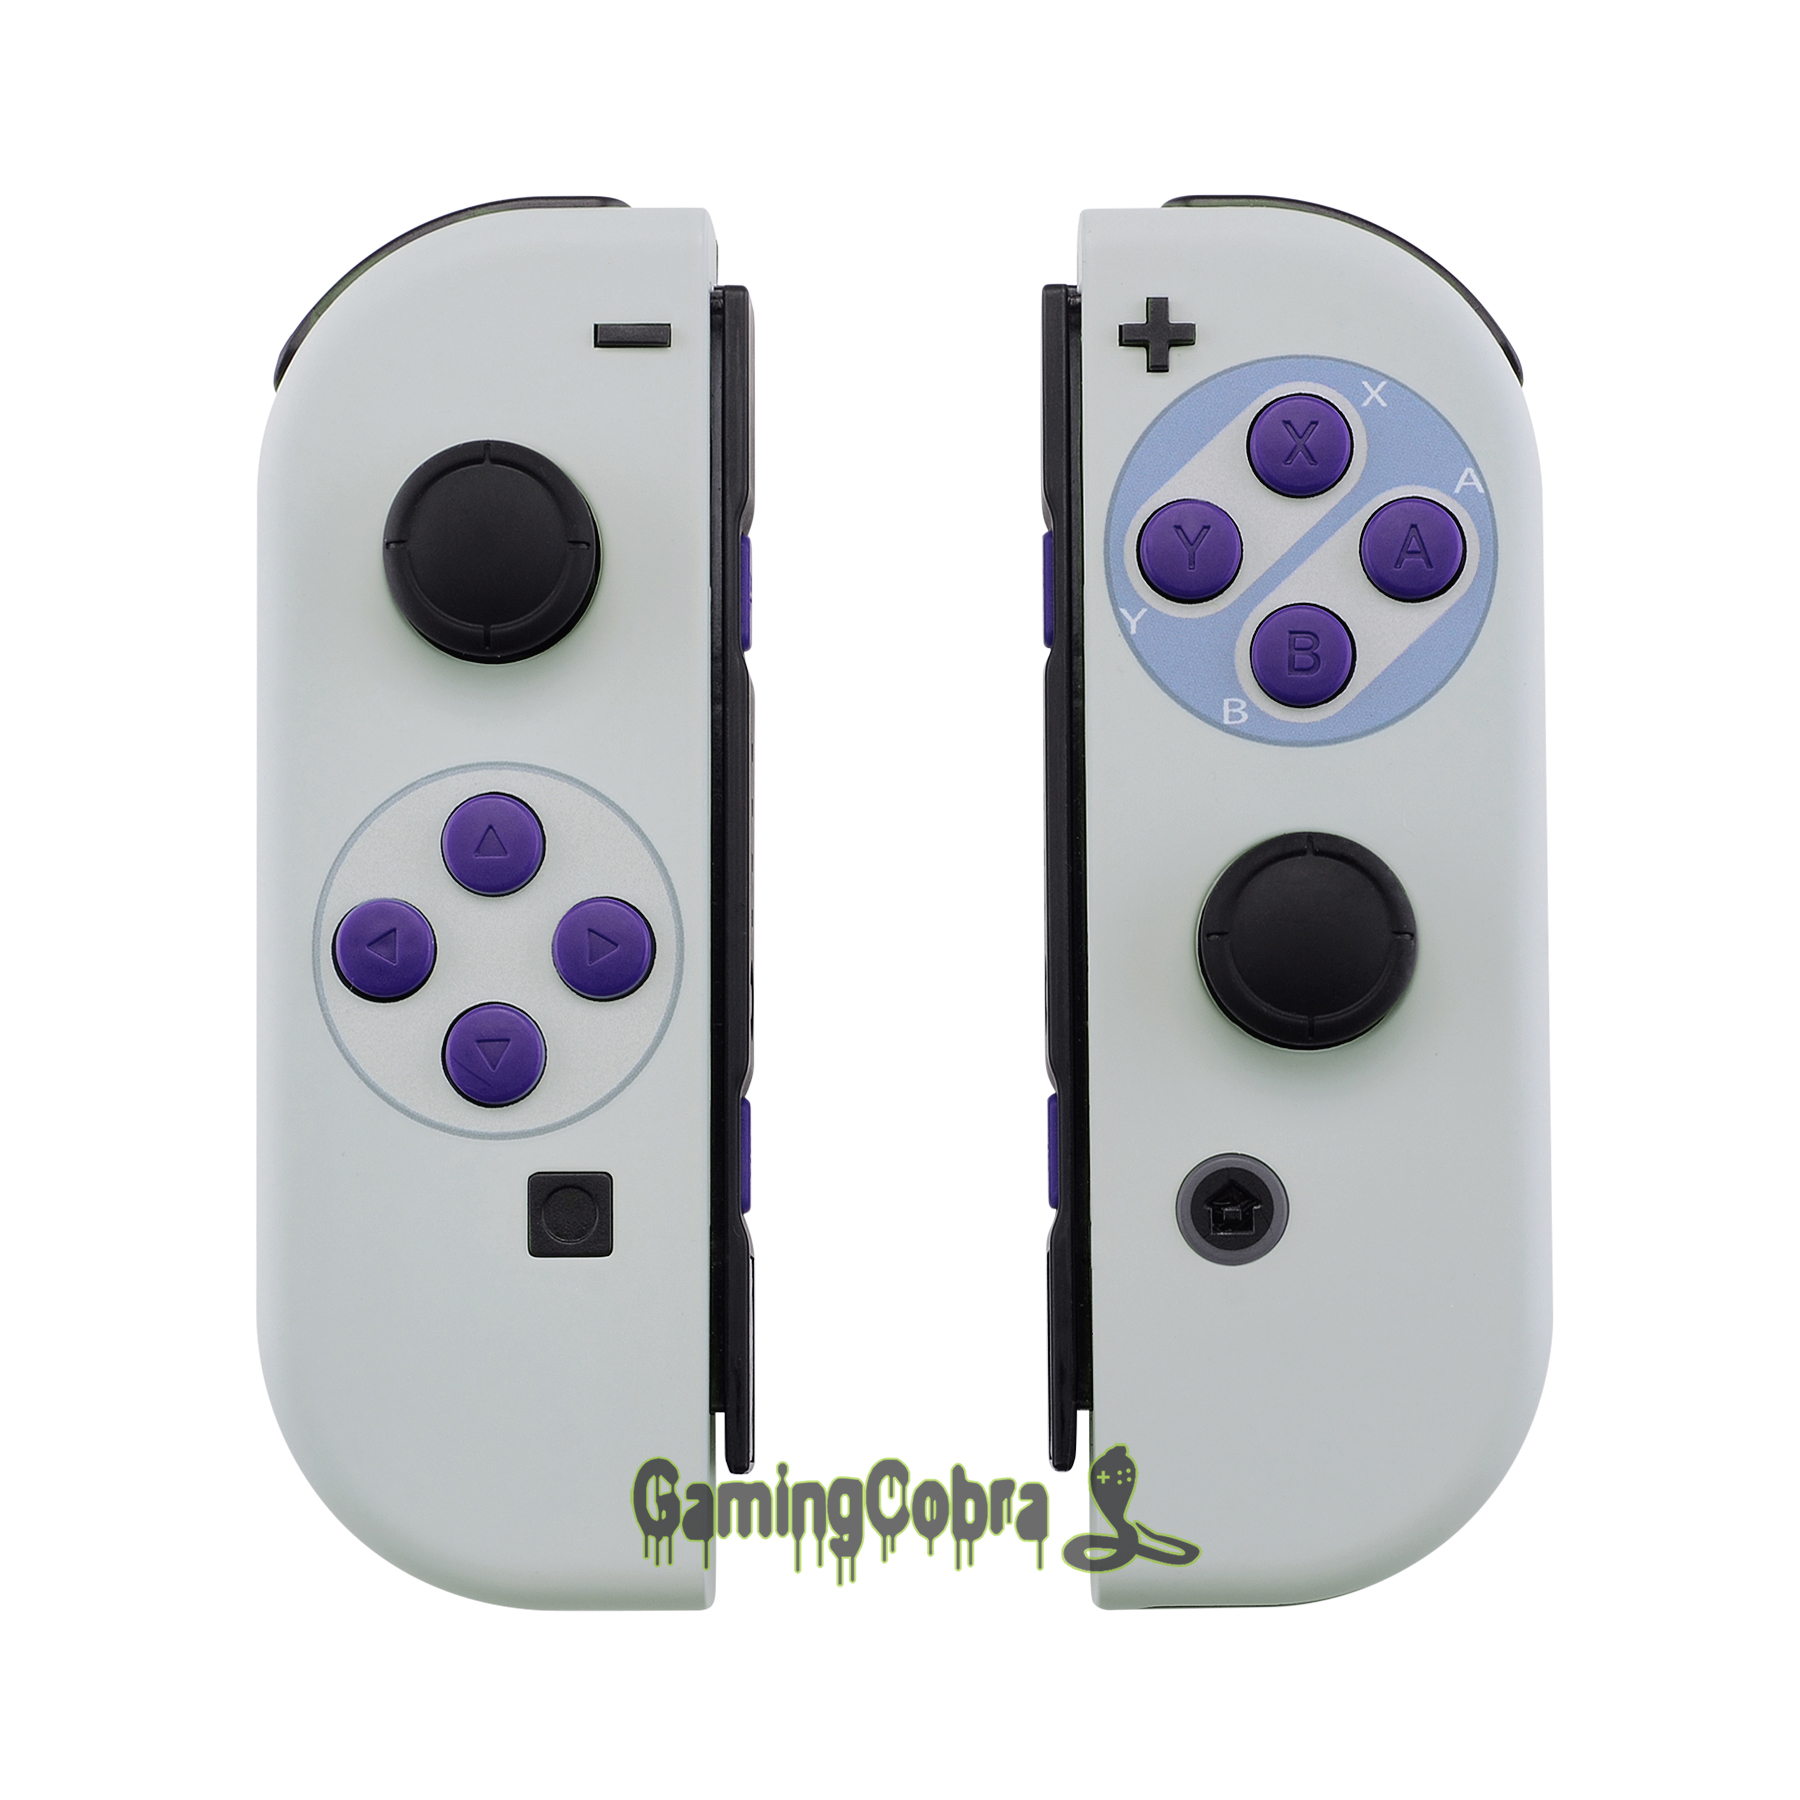 Soft Touch Classics SNES Style Housing Shell Case With Full Set Buttons DIY Replacement Housing For Nintendo Switch Joy-Con